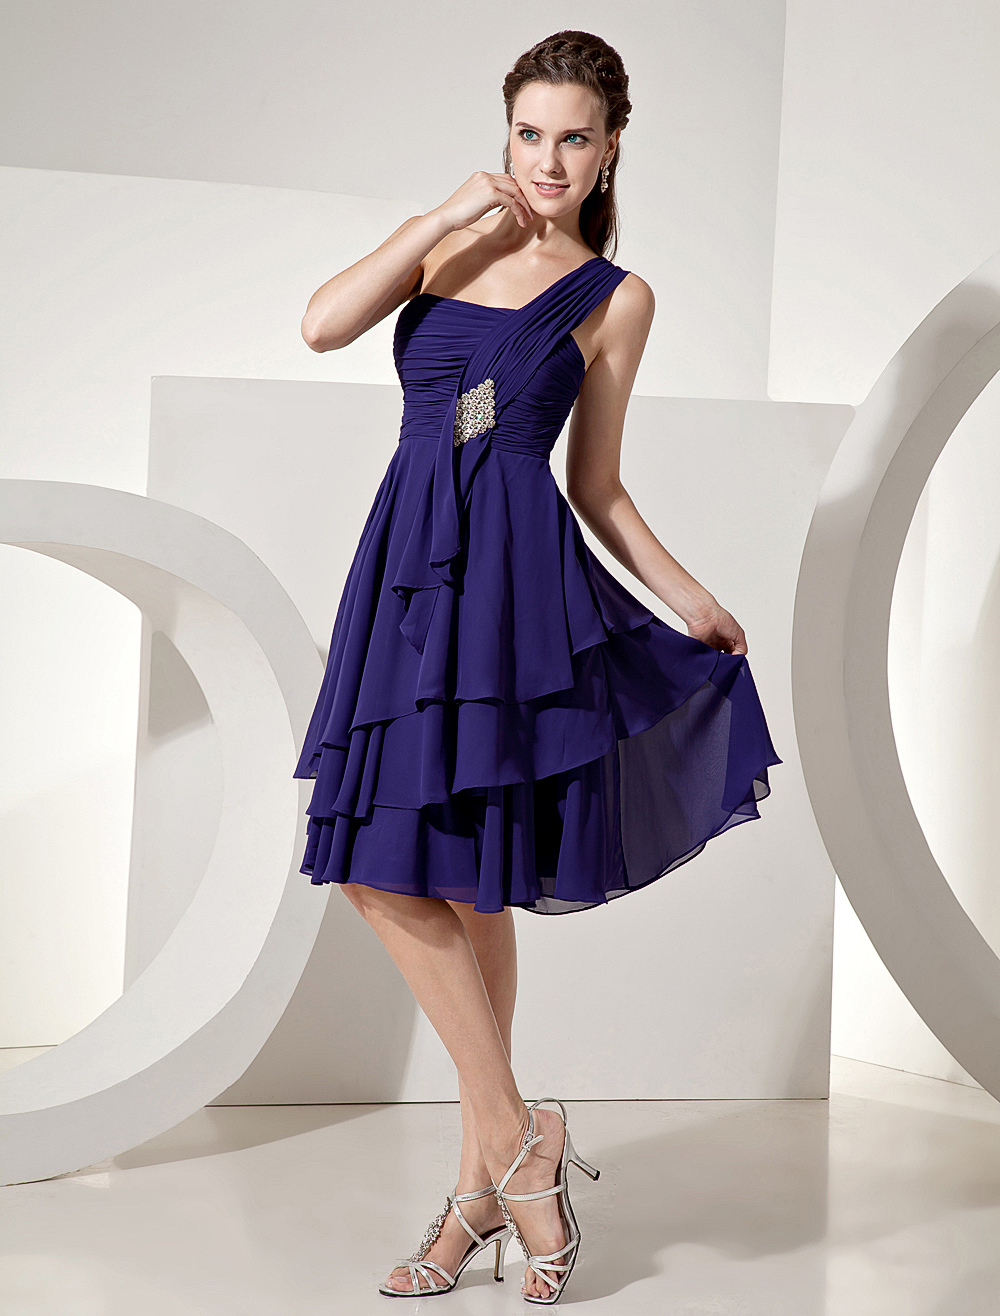 fe38bf2214b Chiffon Bridesmaid Dress Royal Purple Knee Length One Shoulder ...